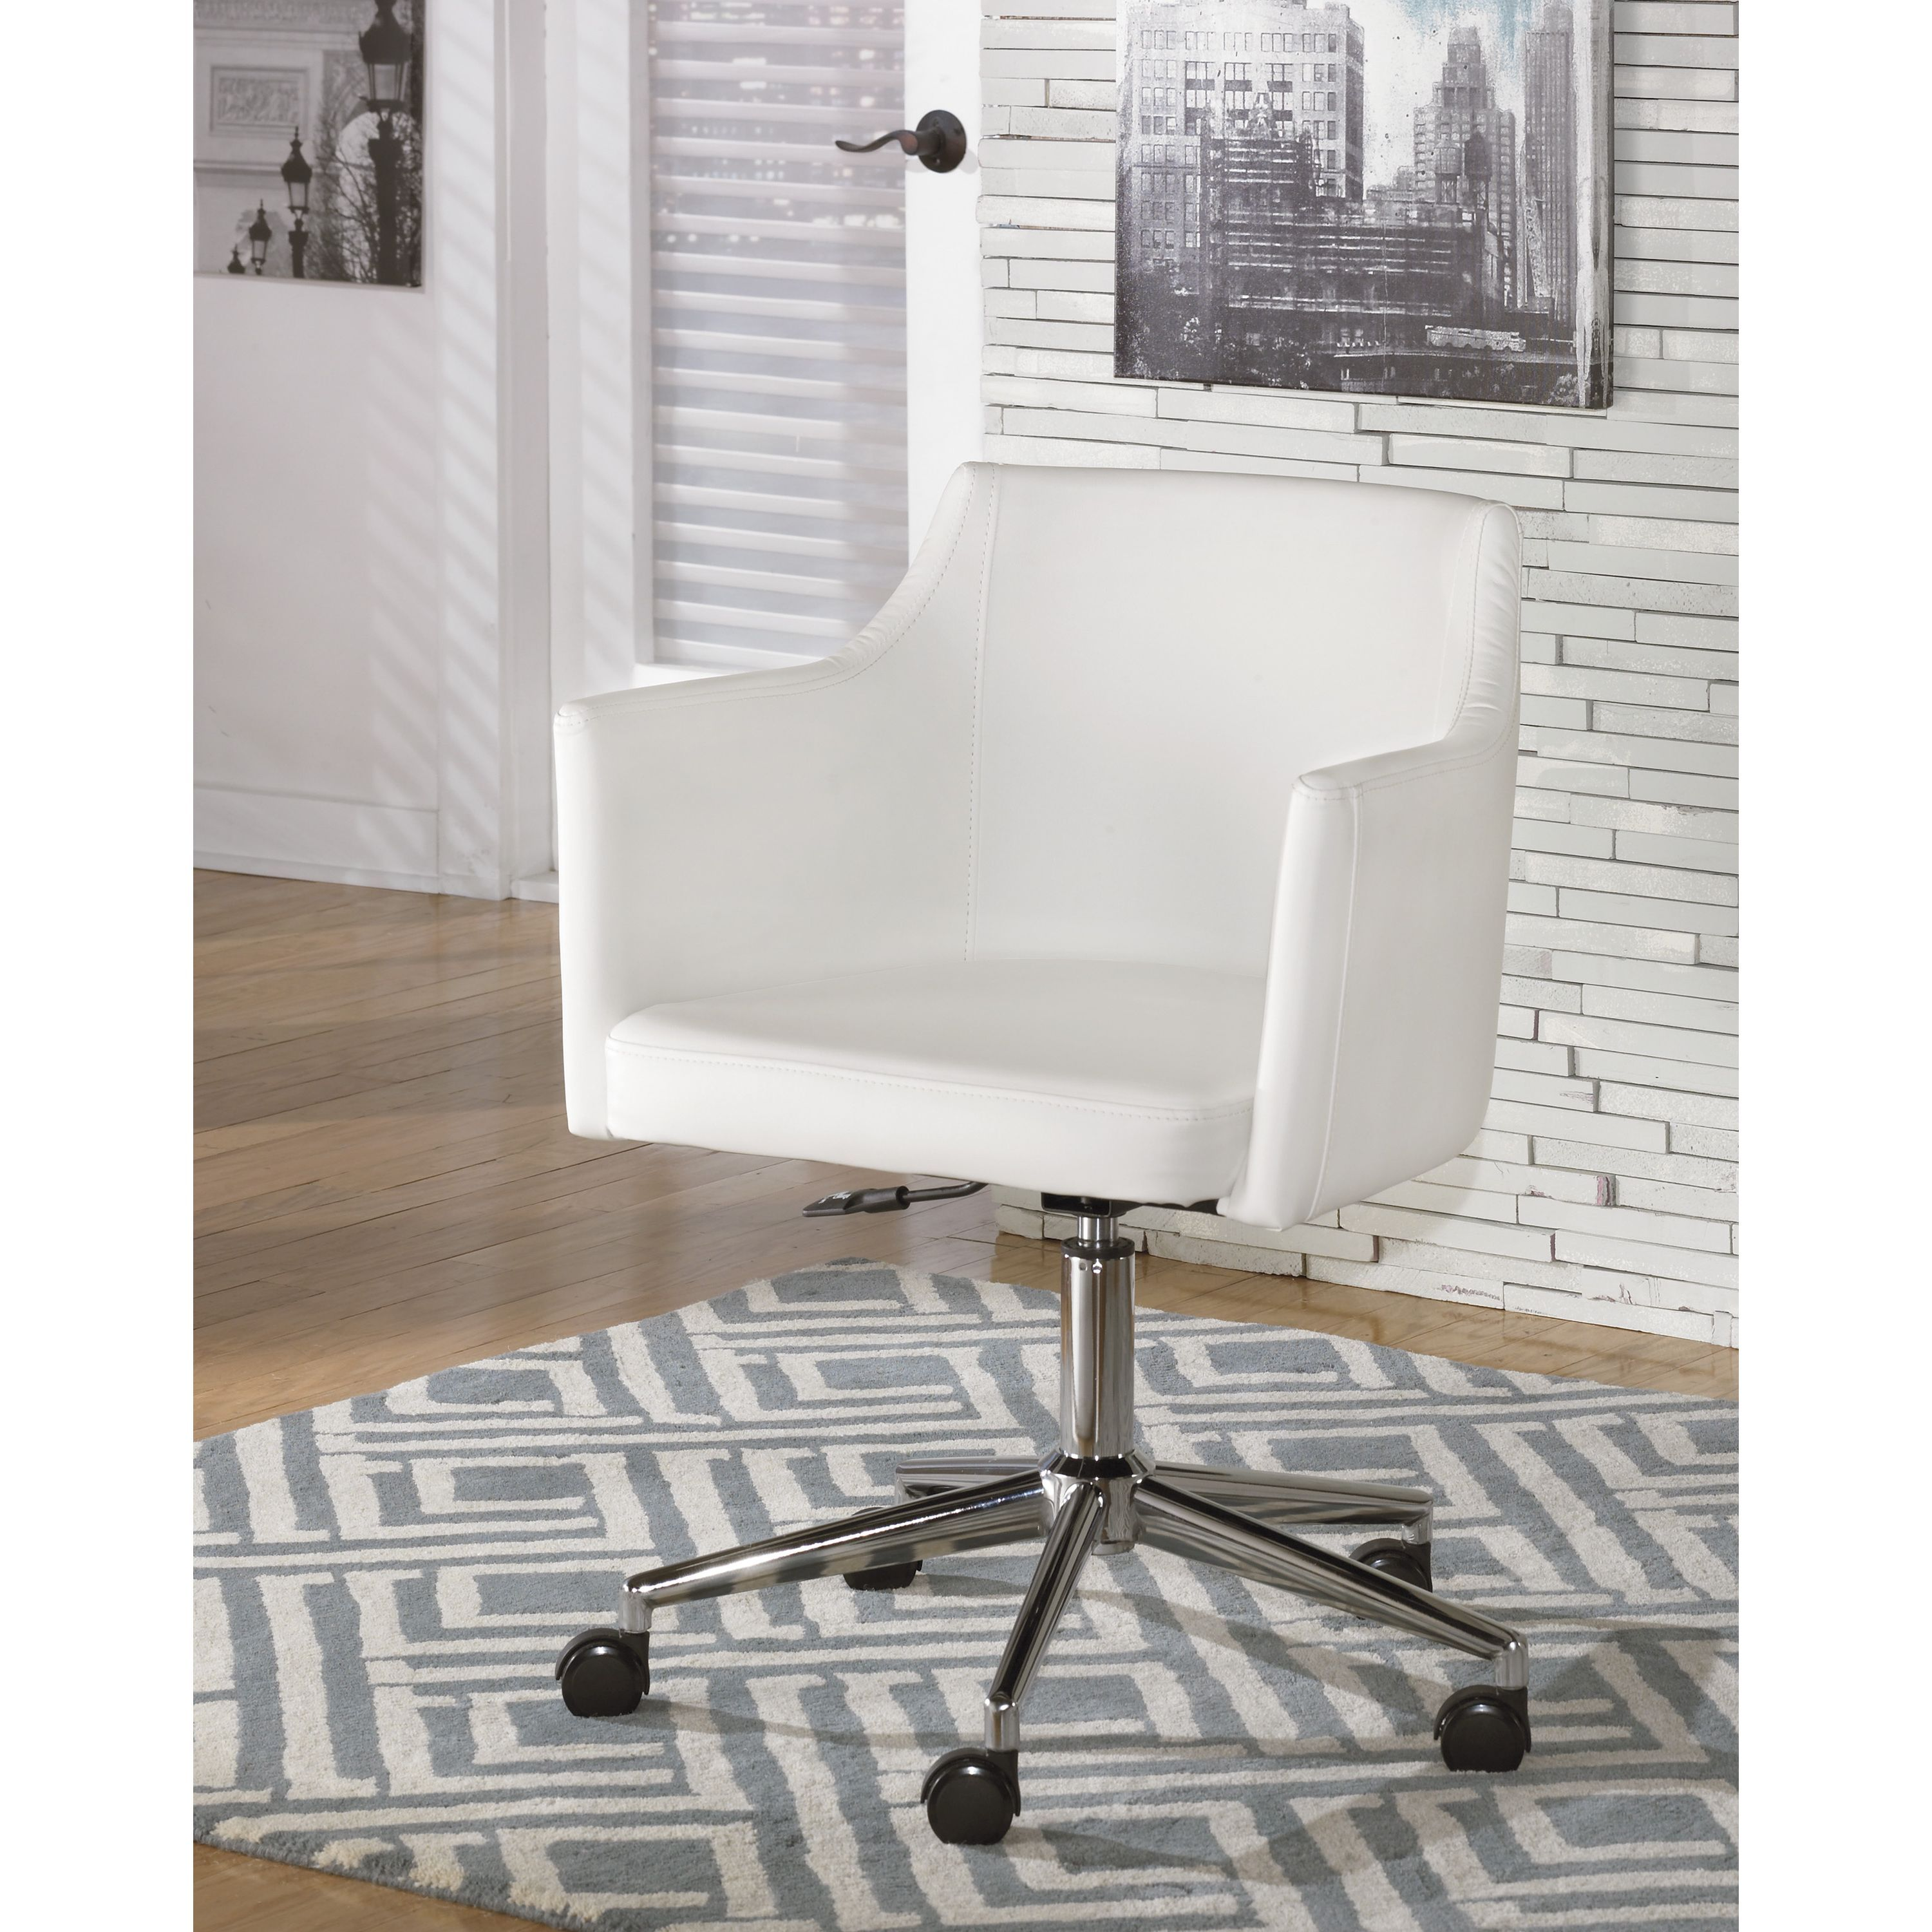 pvc home office chair floor. $174 Create A Modern Look With This Sleek White Upholstered Office Chair. The PVC Upholstery, Chrome Colored Metal Base And Adjustable Height Add Comfort To Pvc Home Chair Floor